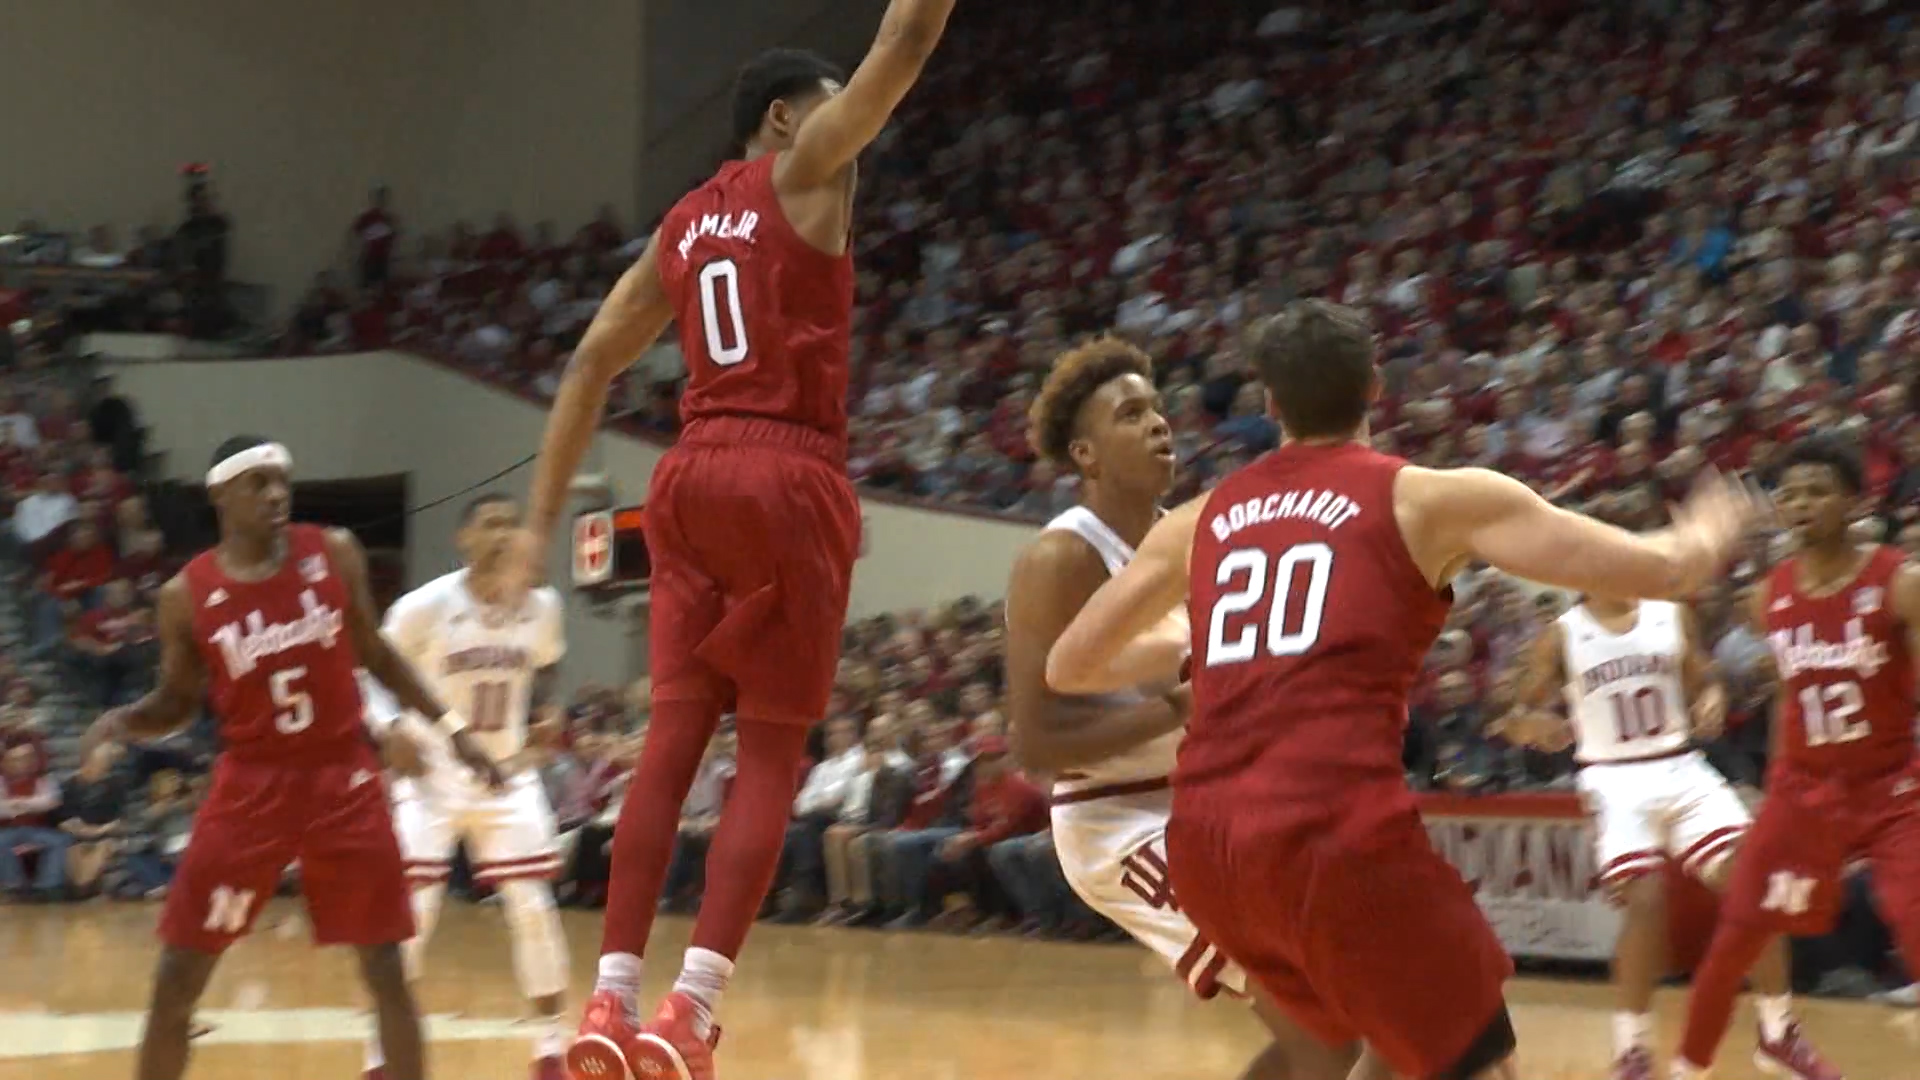 HOOSIERS FALL TO NEBRASKA_1547525315196.jpg.jpg